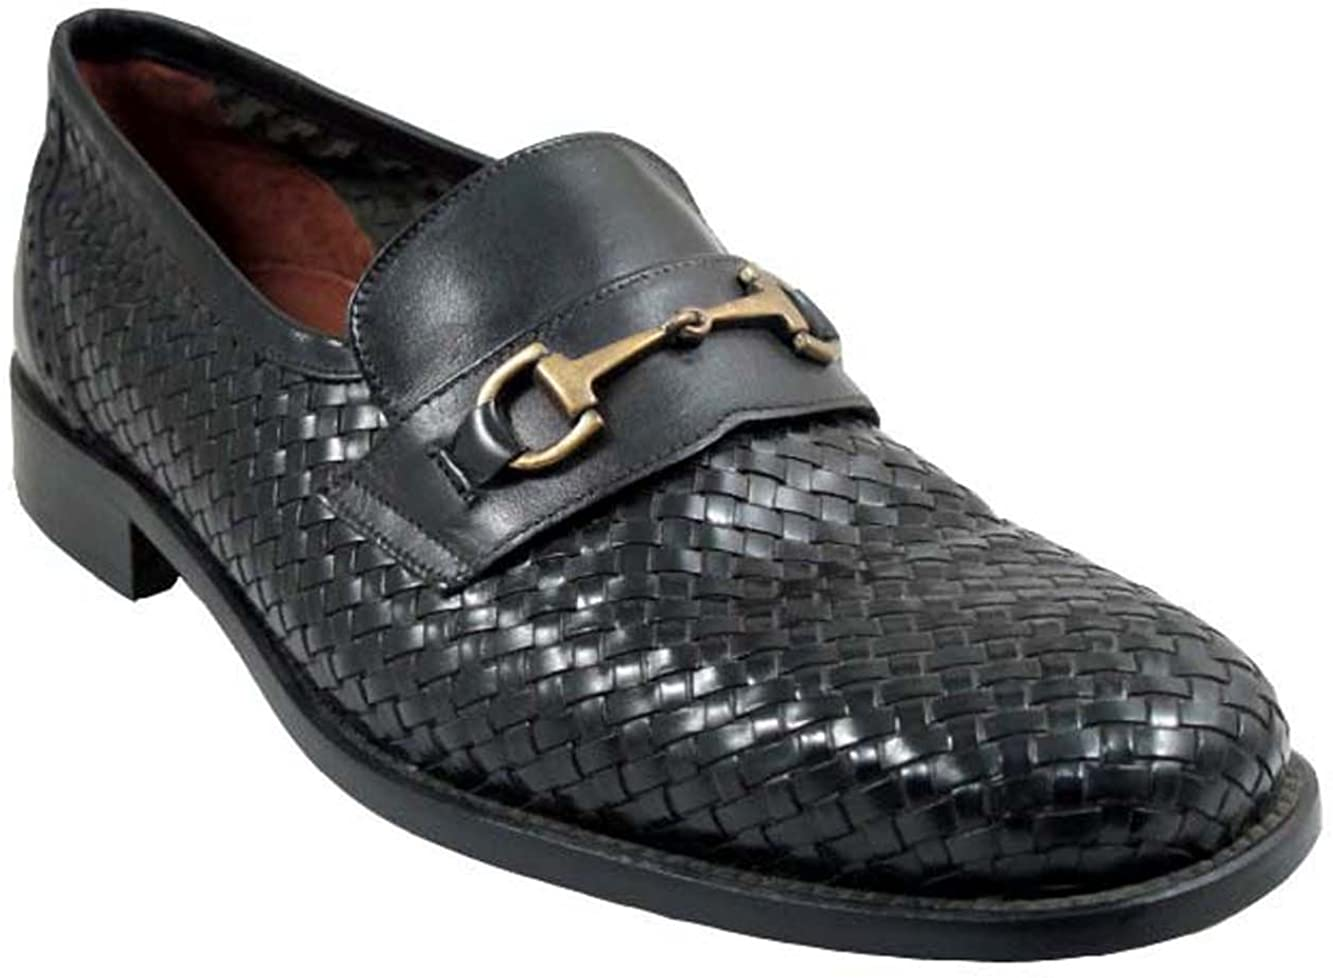 DaVinci Men's 4468 Woven Italian Leather Loafers with Buckle in Black